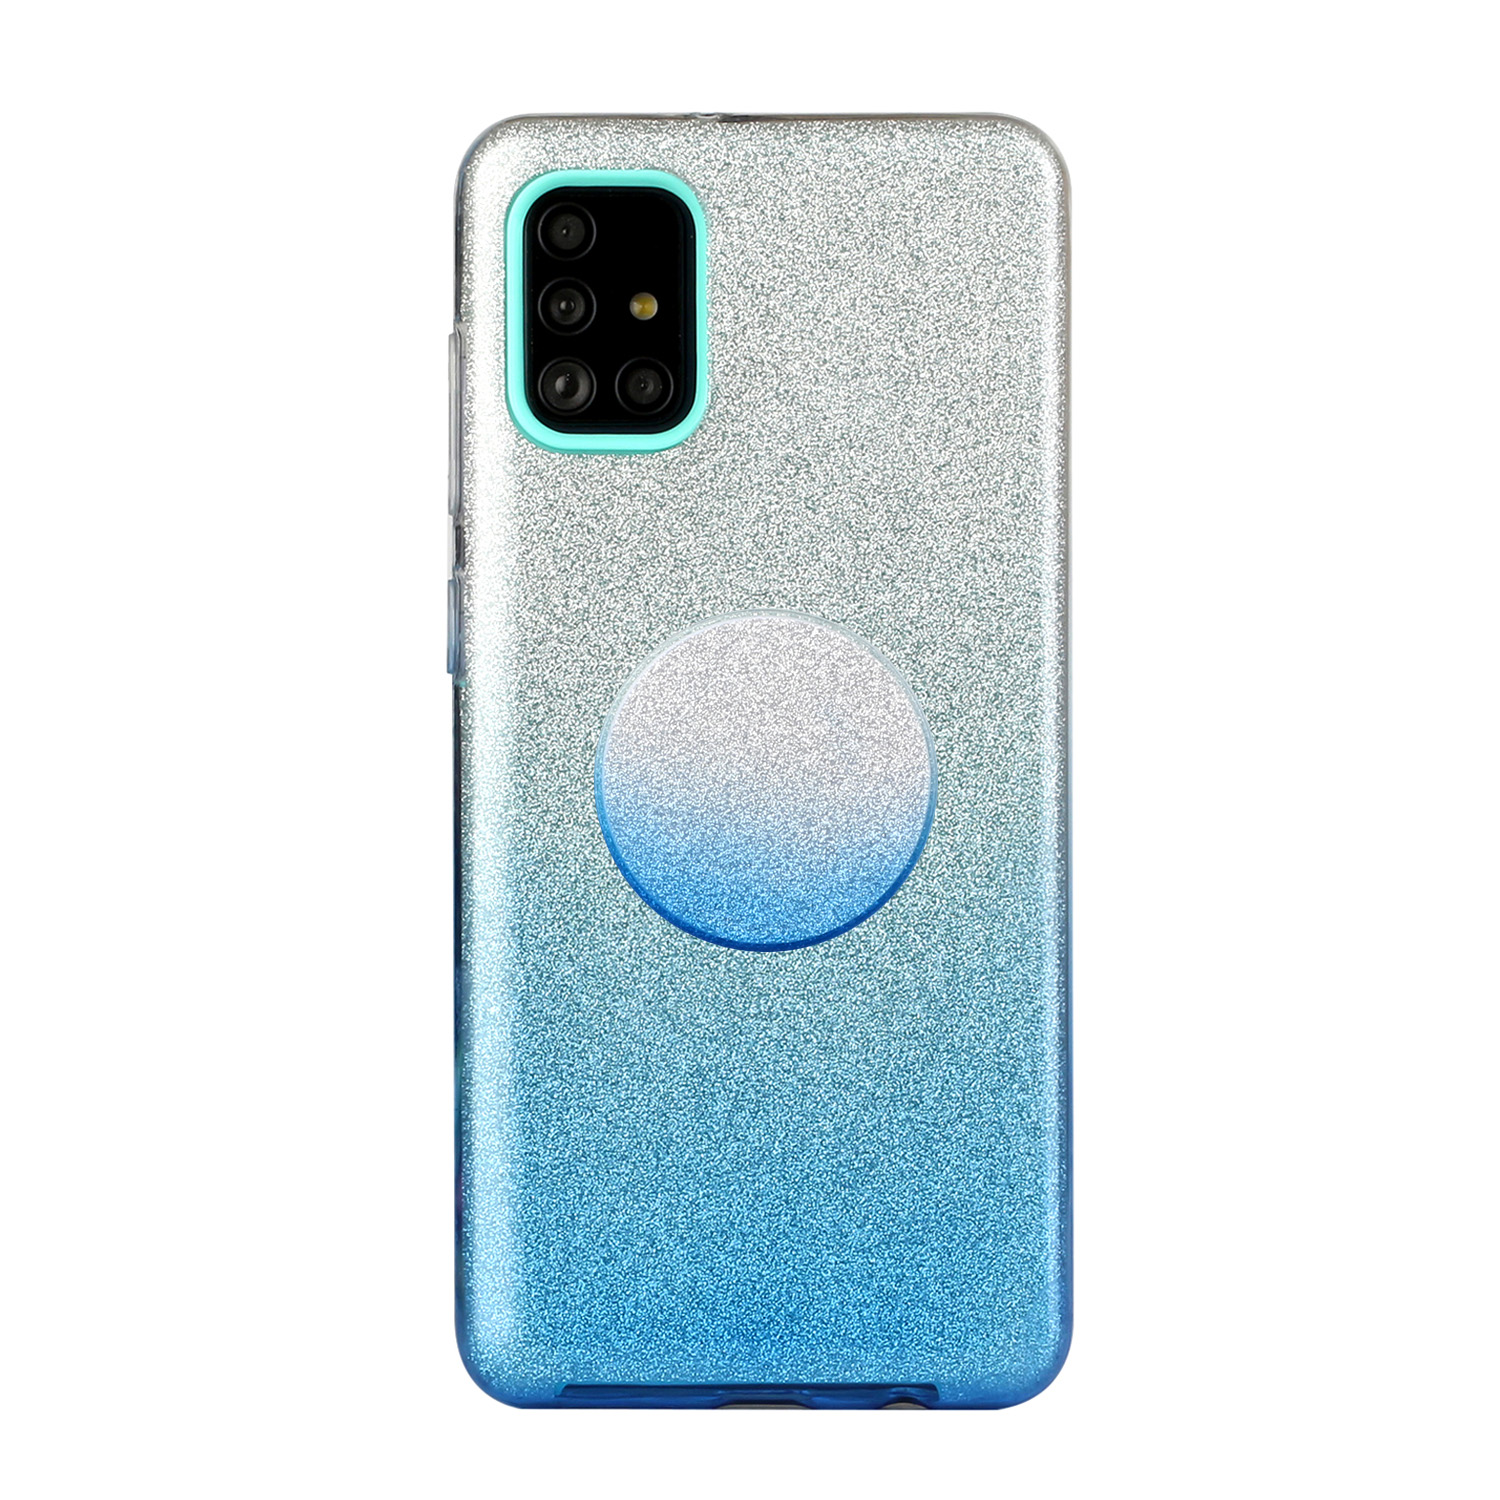 For Samsung A01/A11 European version/A31/A71 Phone Case Gradient Color Glitter Powder Phone Cover with Airbag Bracket blue